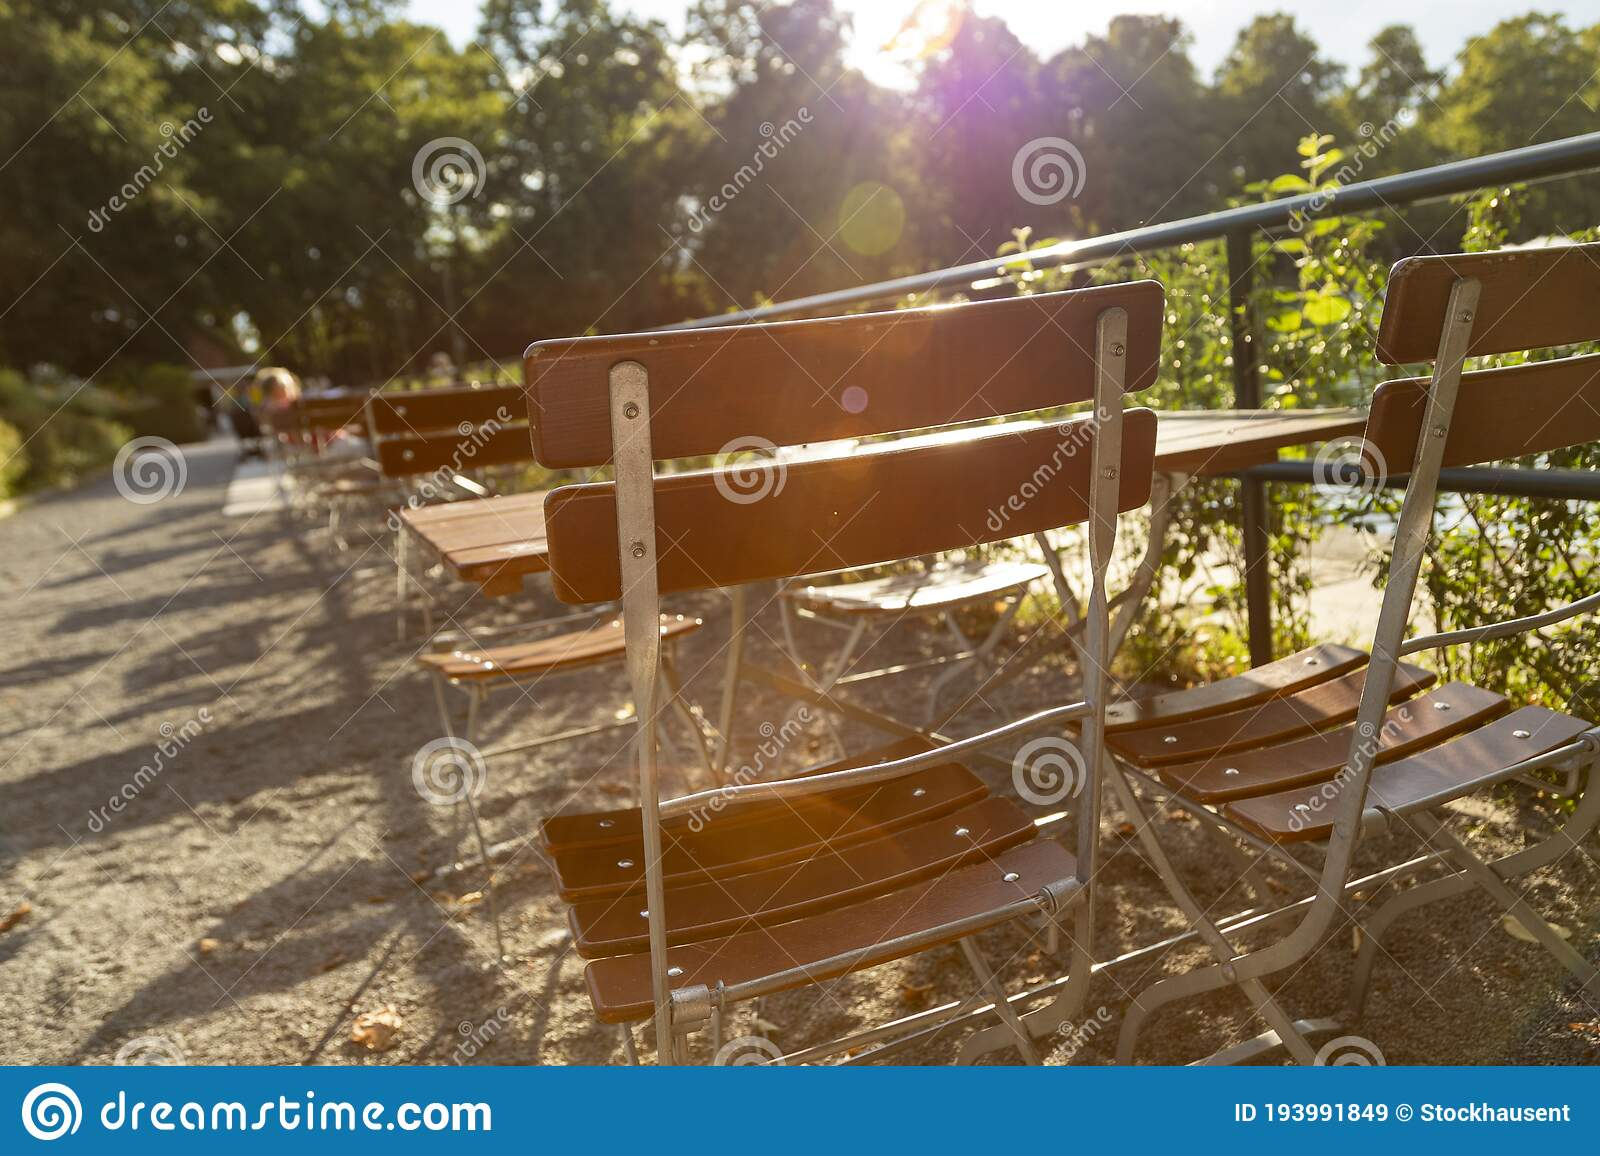 Perspective View Of The Tables In An Outdoor Restaurant Beer Garden Stock Image Image Of Background City 193991849